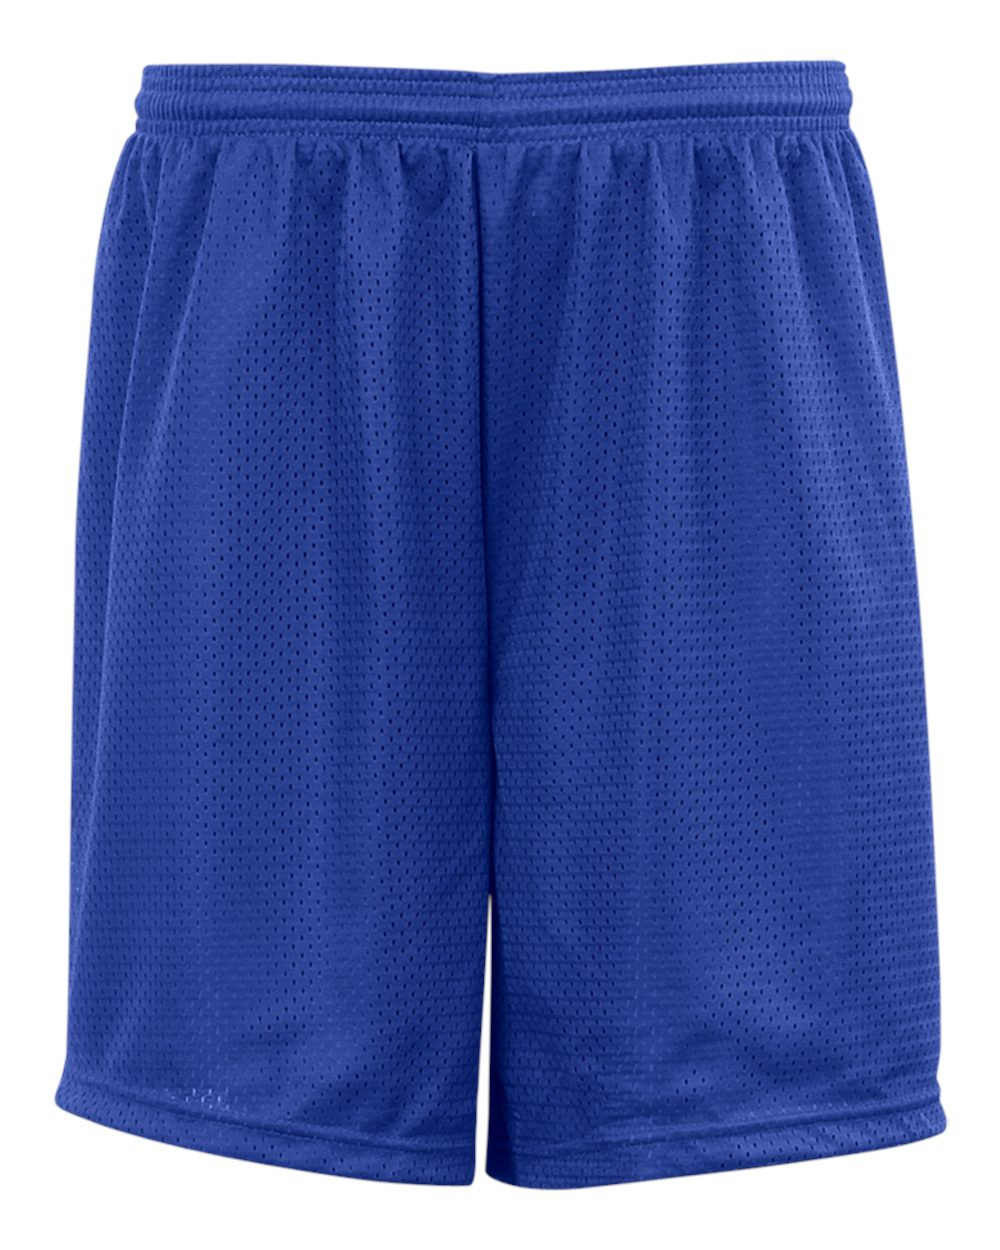 Mesh/Tricot 6 Inch Youth Short - Royal